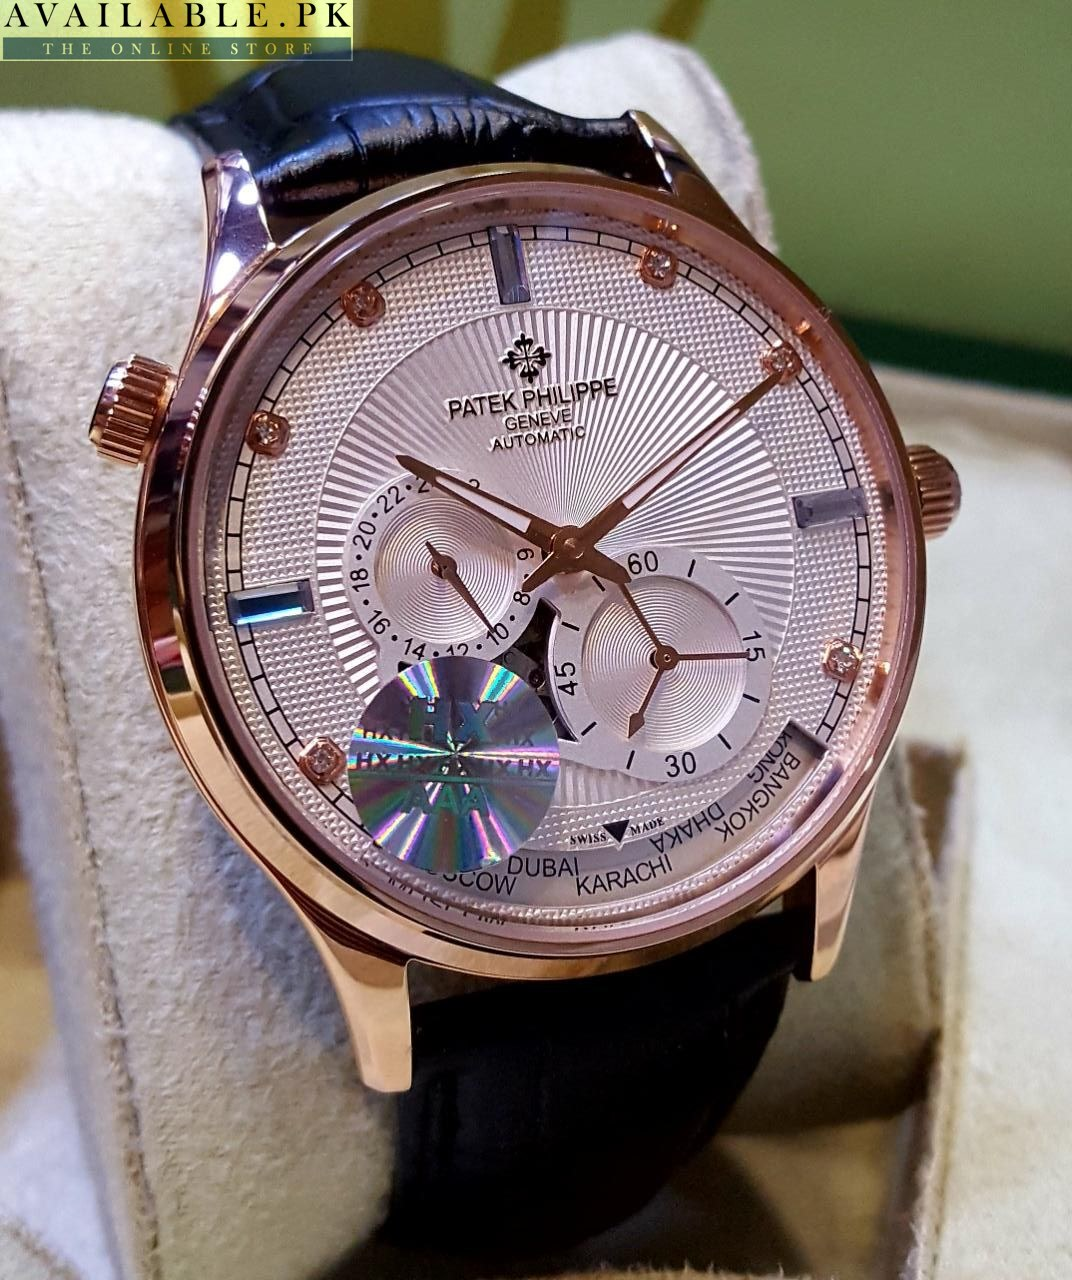 Patek Philippe Geneve World Time Chronograph Automatic Men S Watch